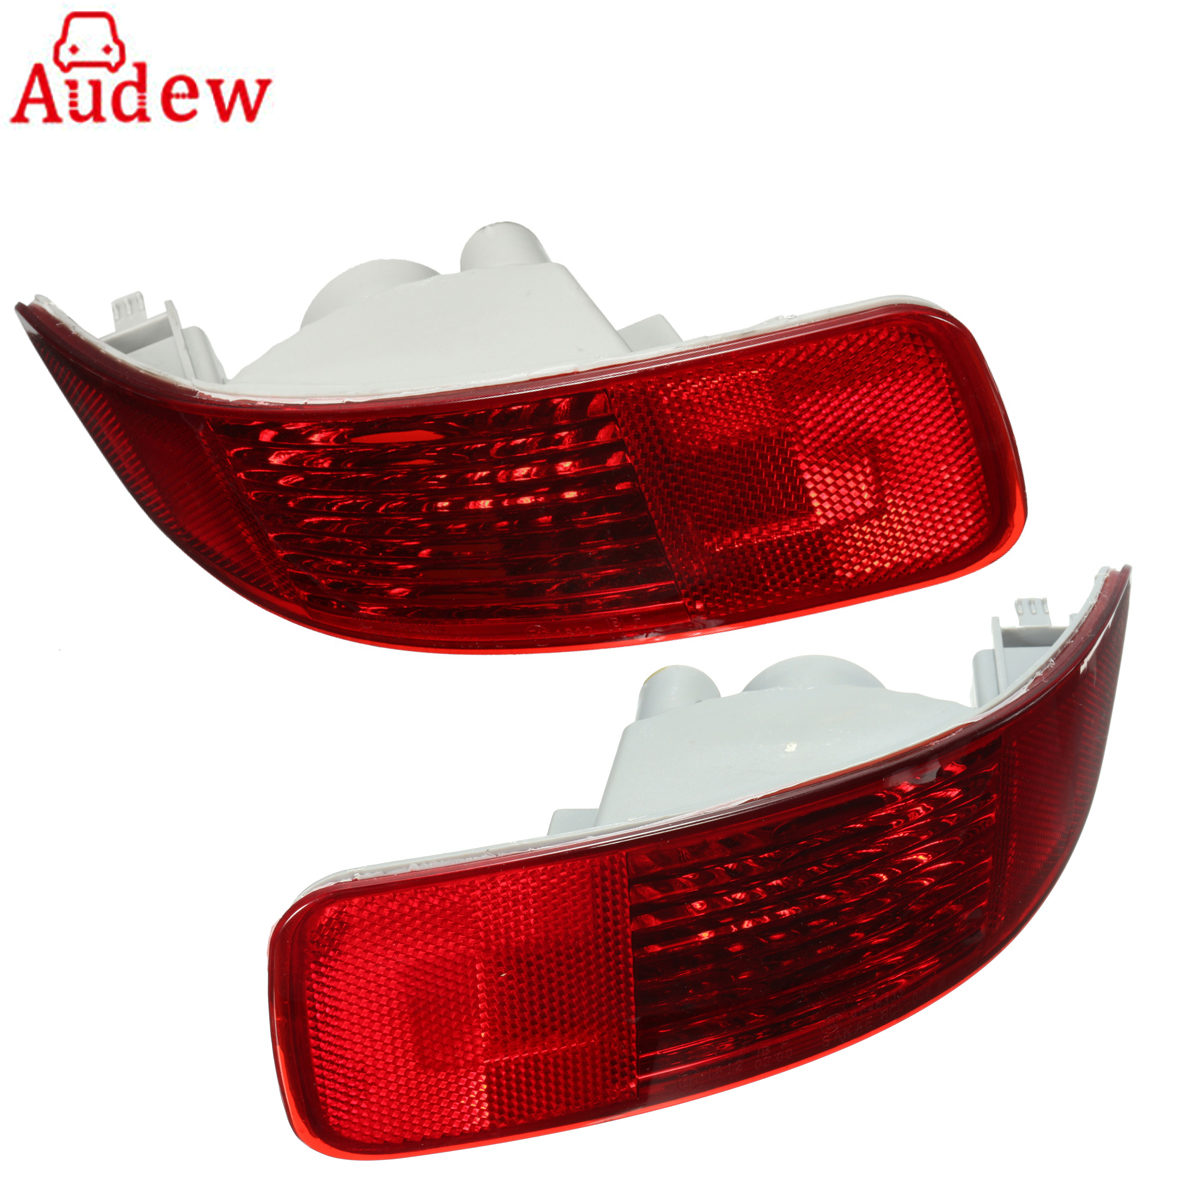 1Pcs Car Rear Right/Left Tail Fog Light Warning Lamp For Mitsubish Outlander for Peugeot ...